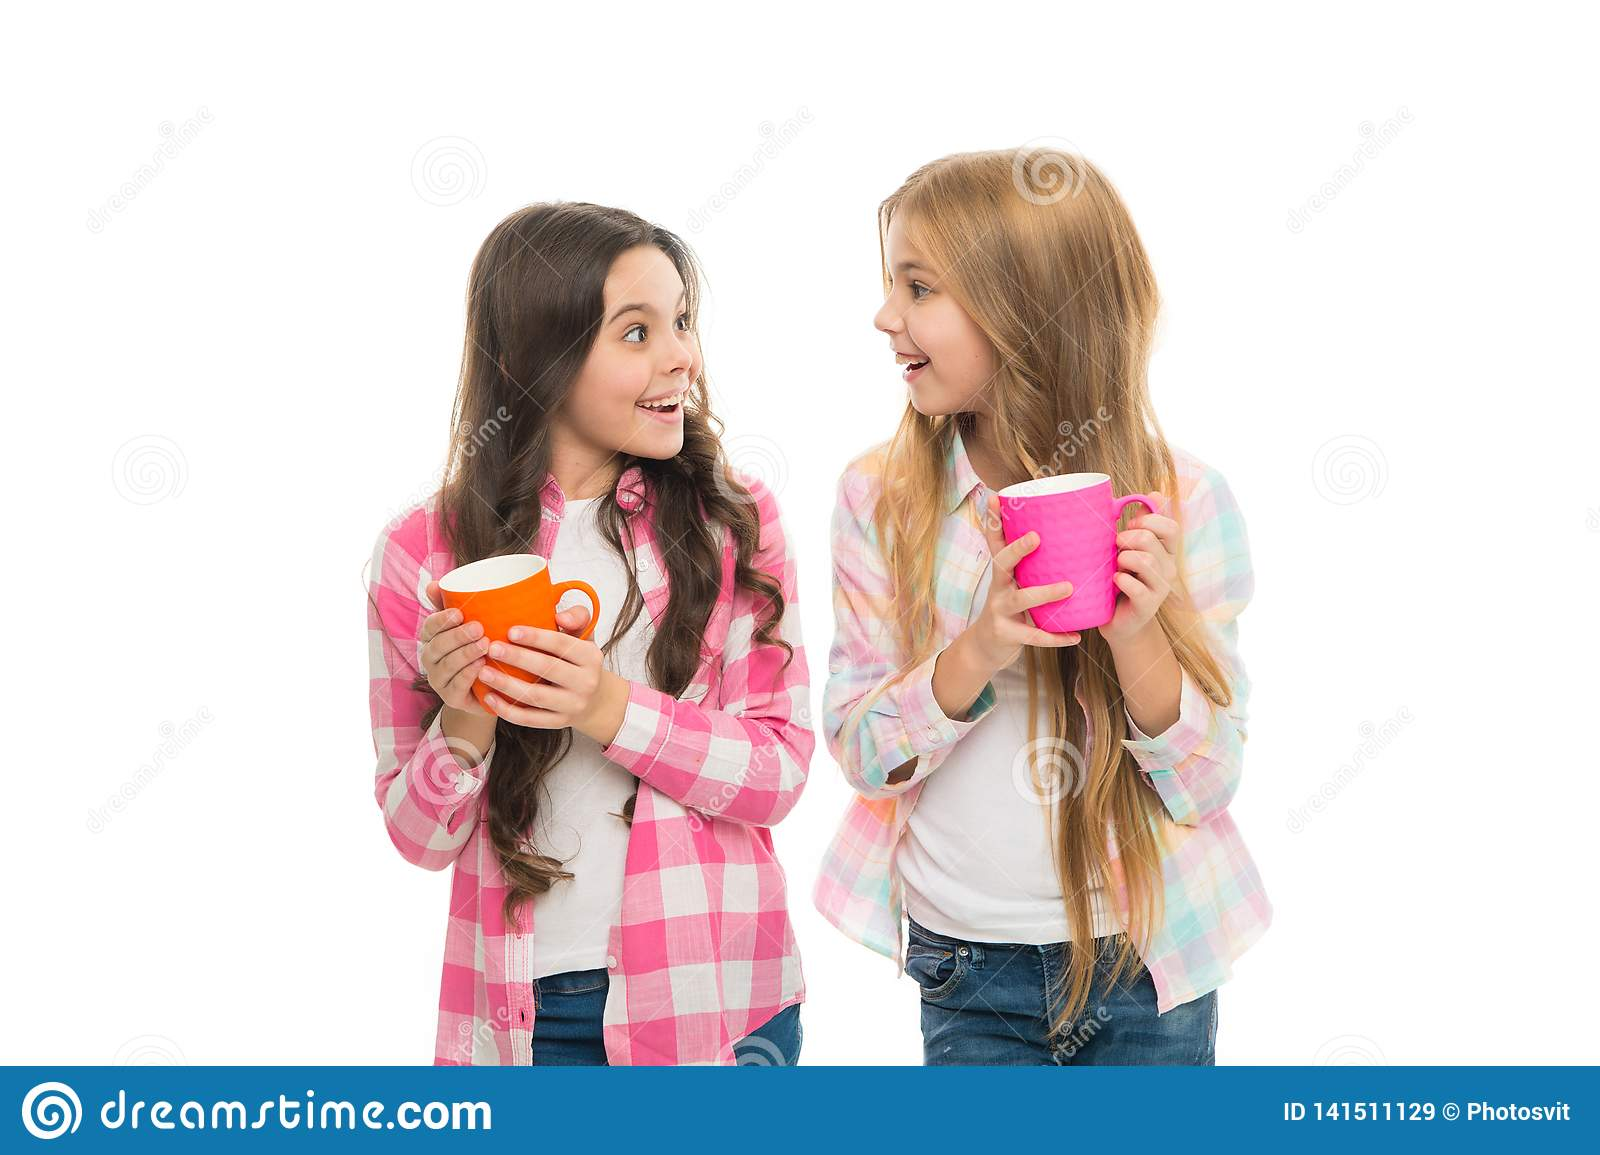 Hot cocoa recipe. Make sure kids drink enough water. Girls kids hold cups white background. Sisters hold mugs. Drinking